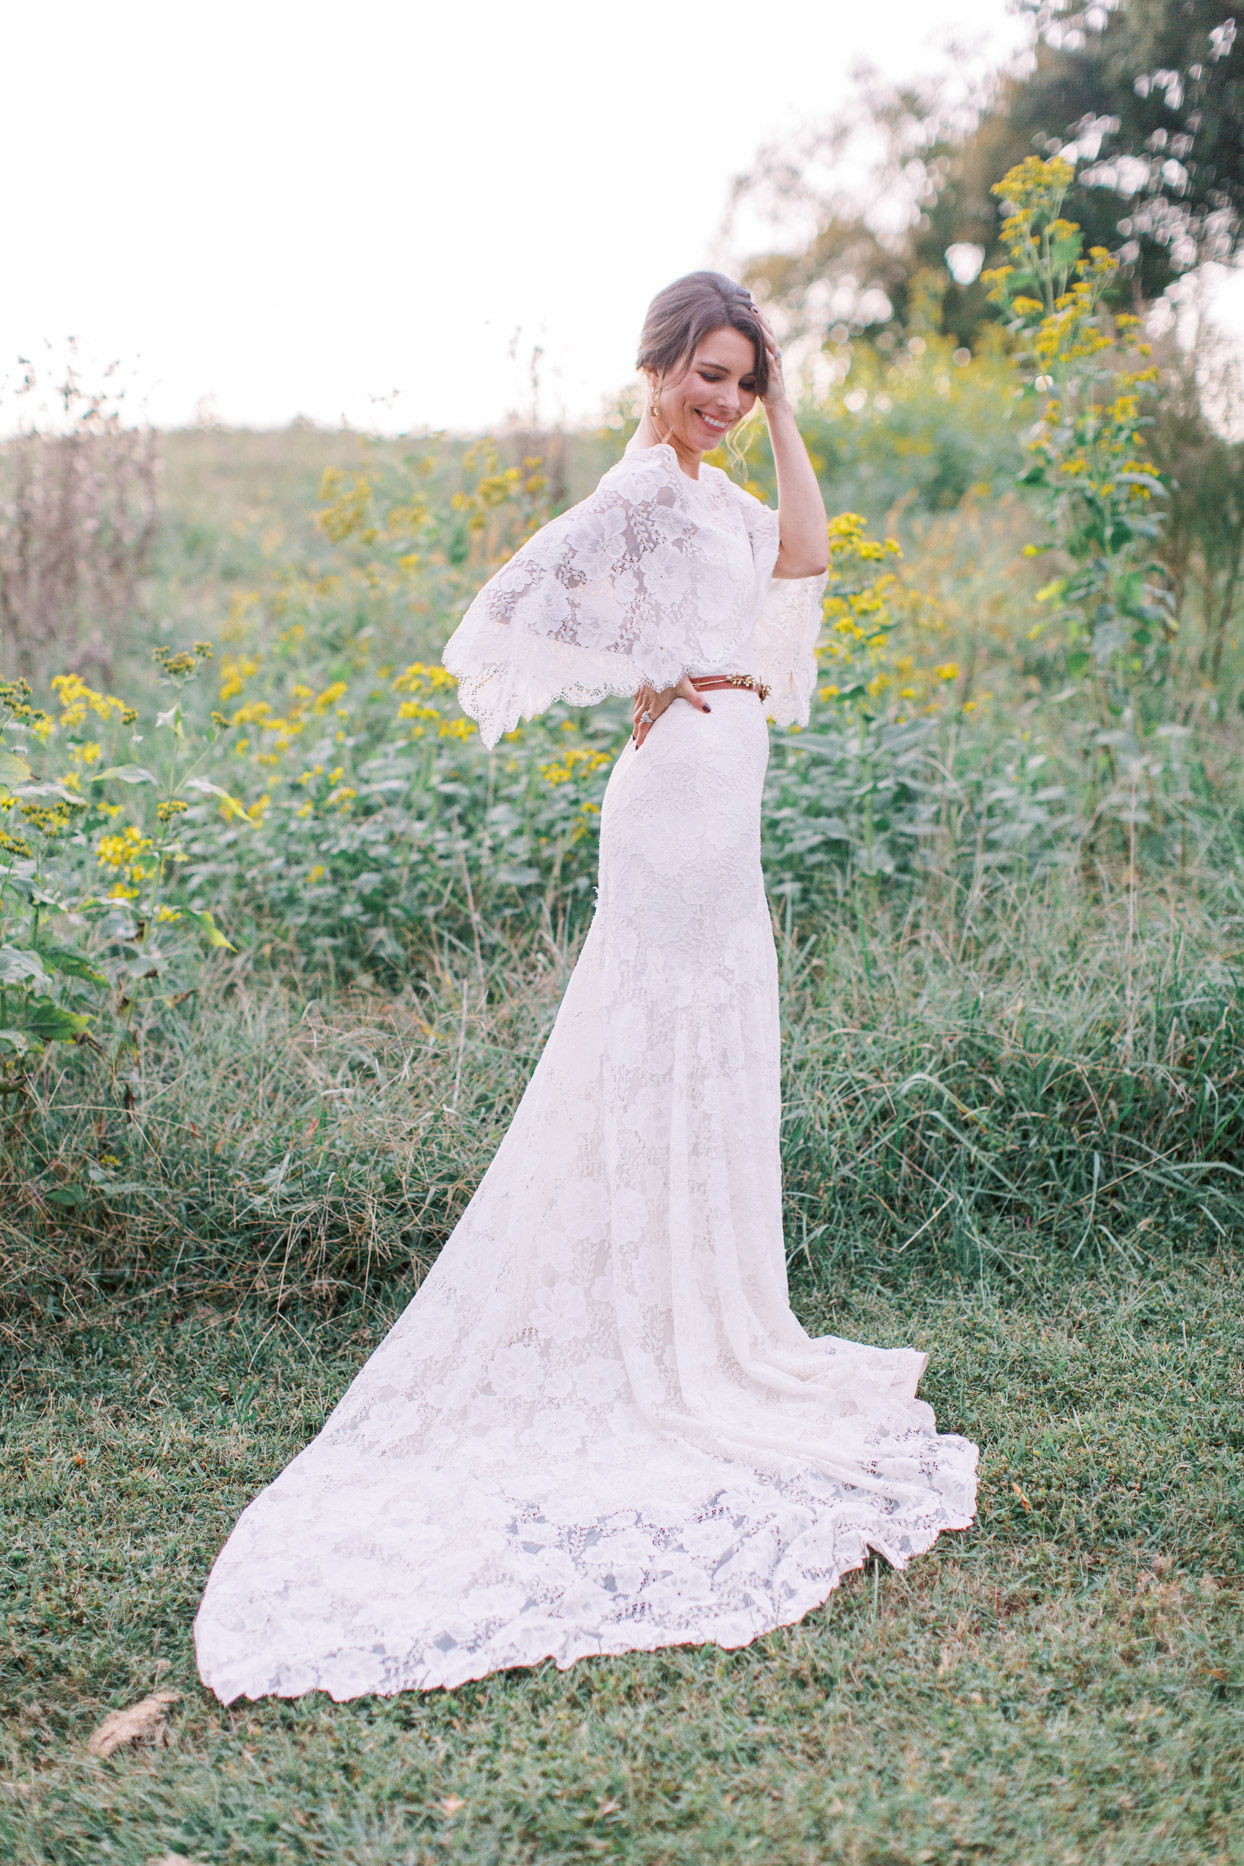 bride in flowing lace wedding dress with cape